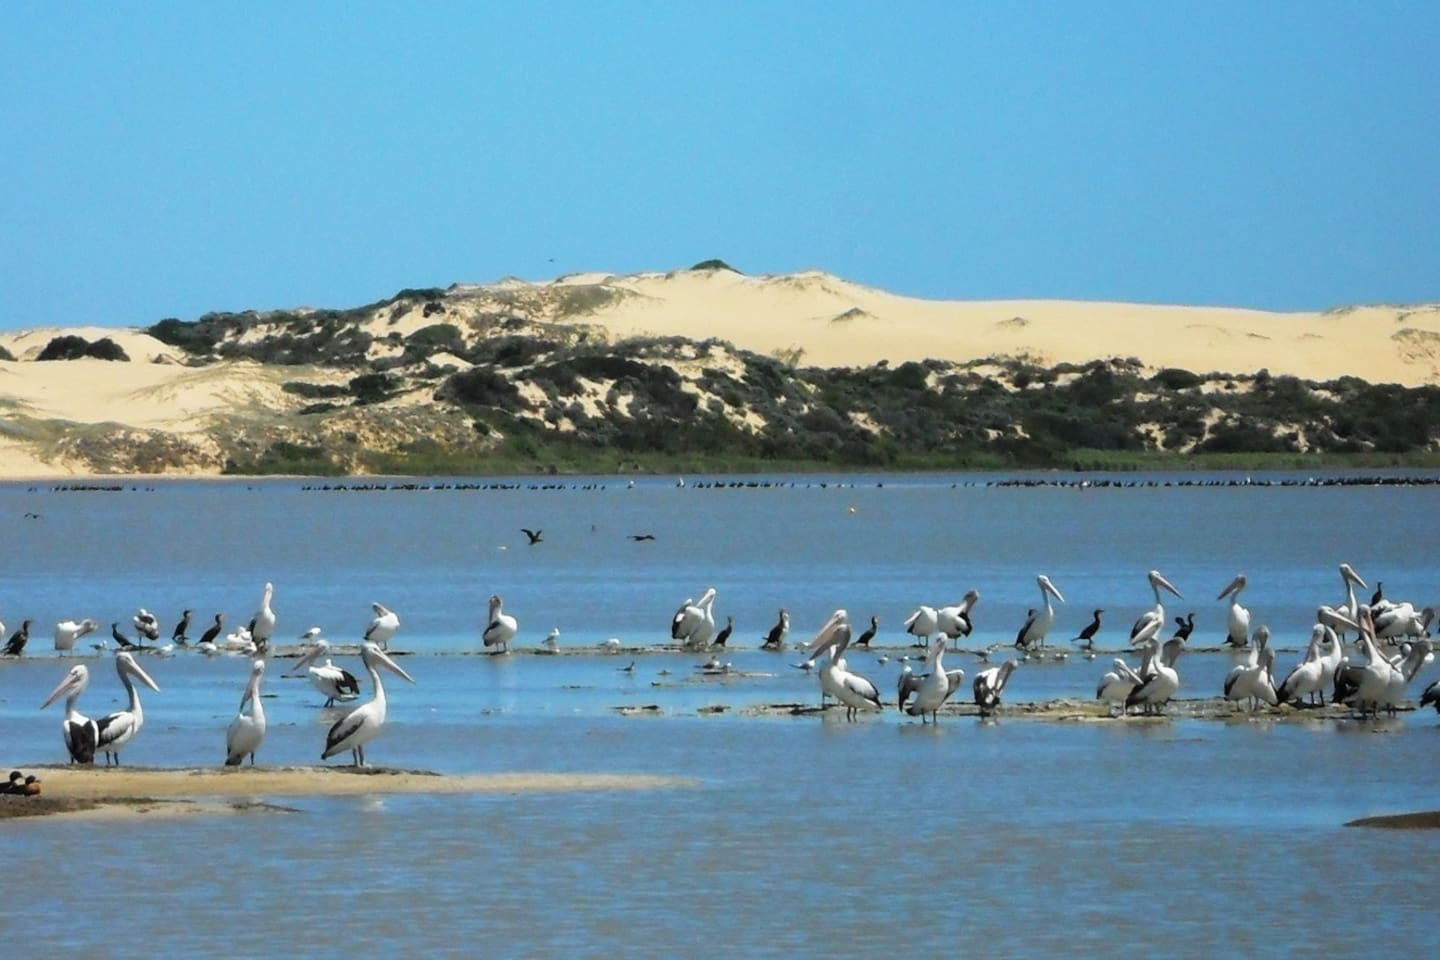 The beautiful Coorong sand dunes and birdlife